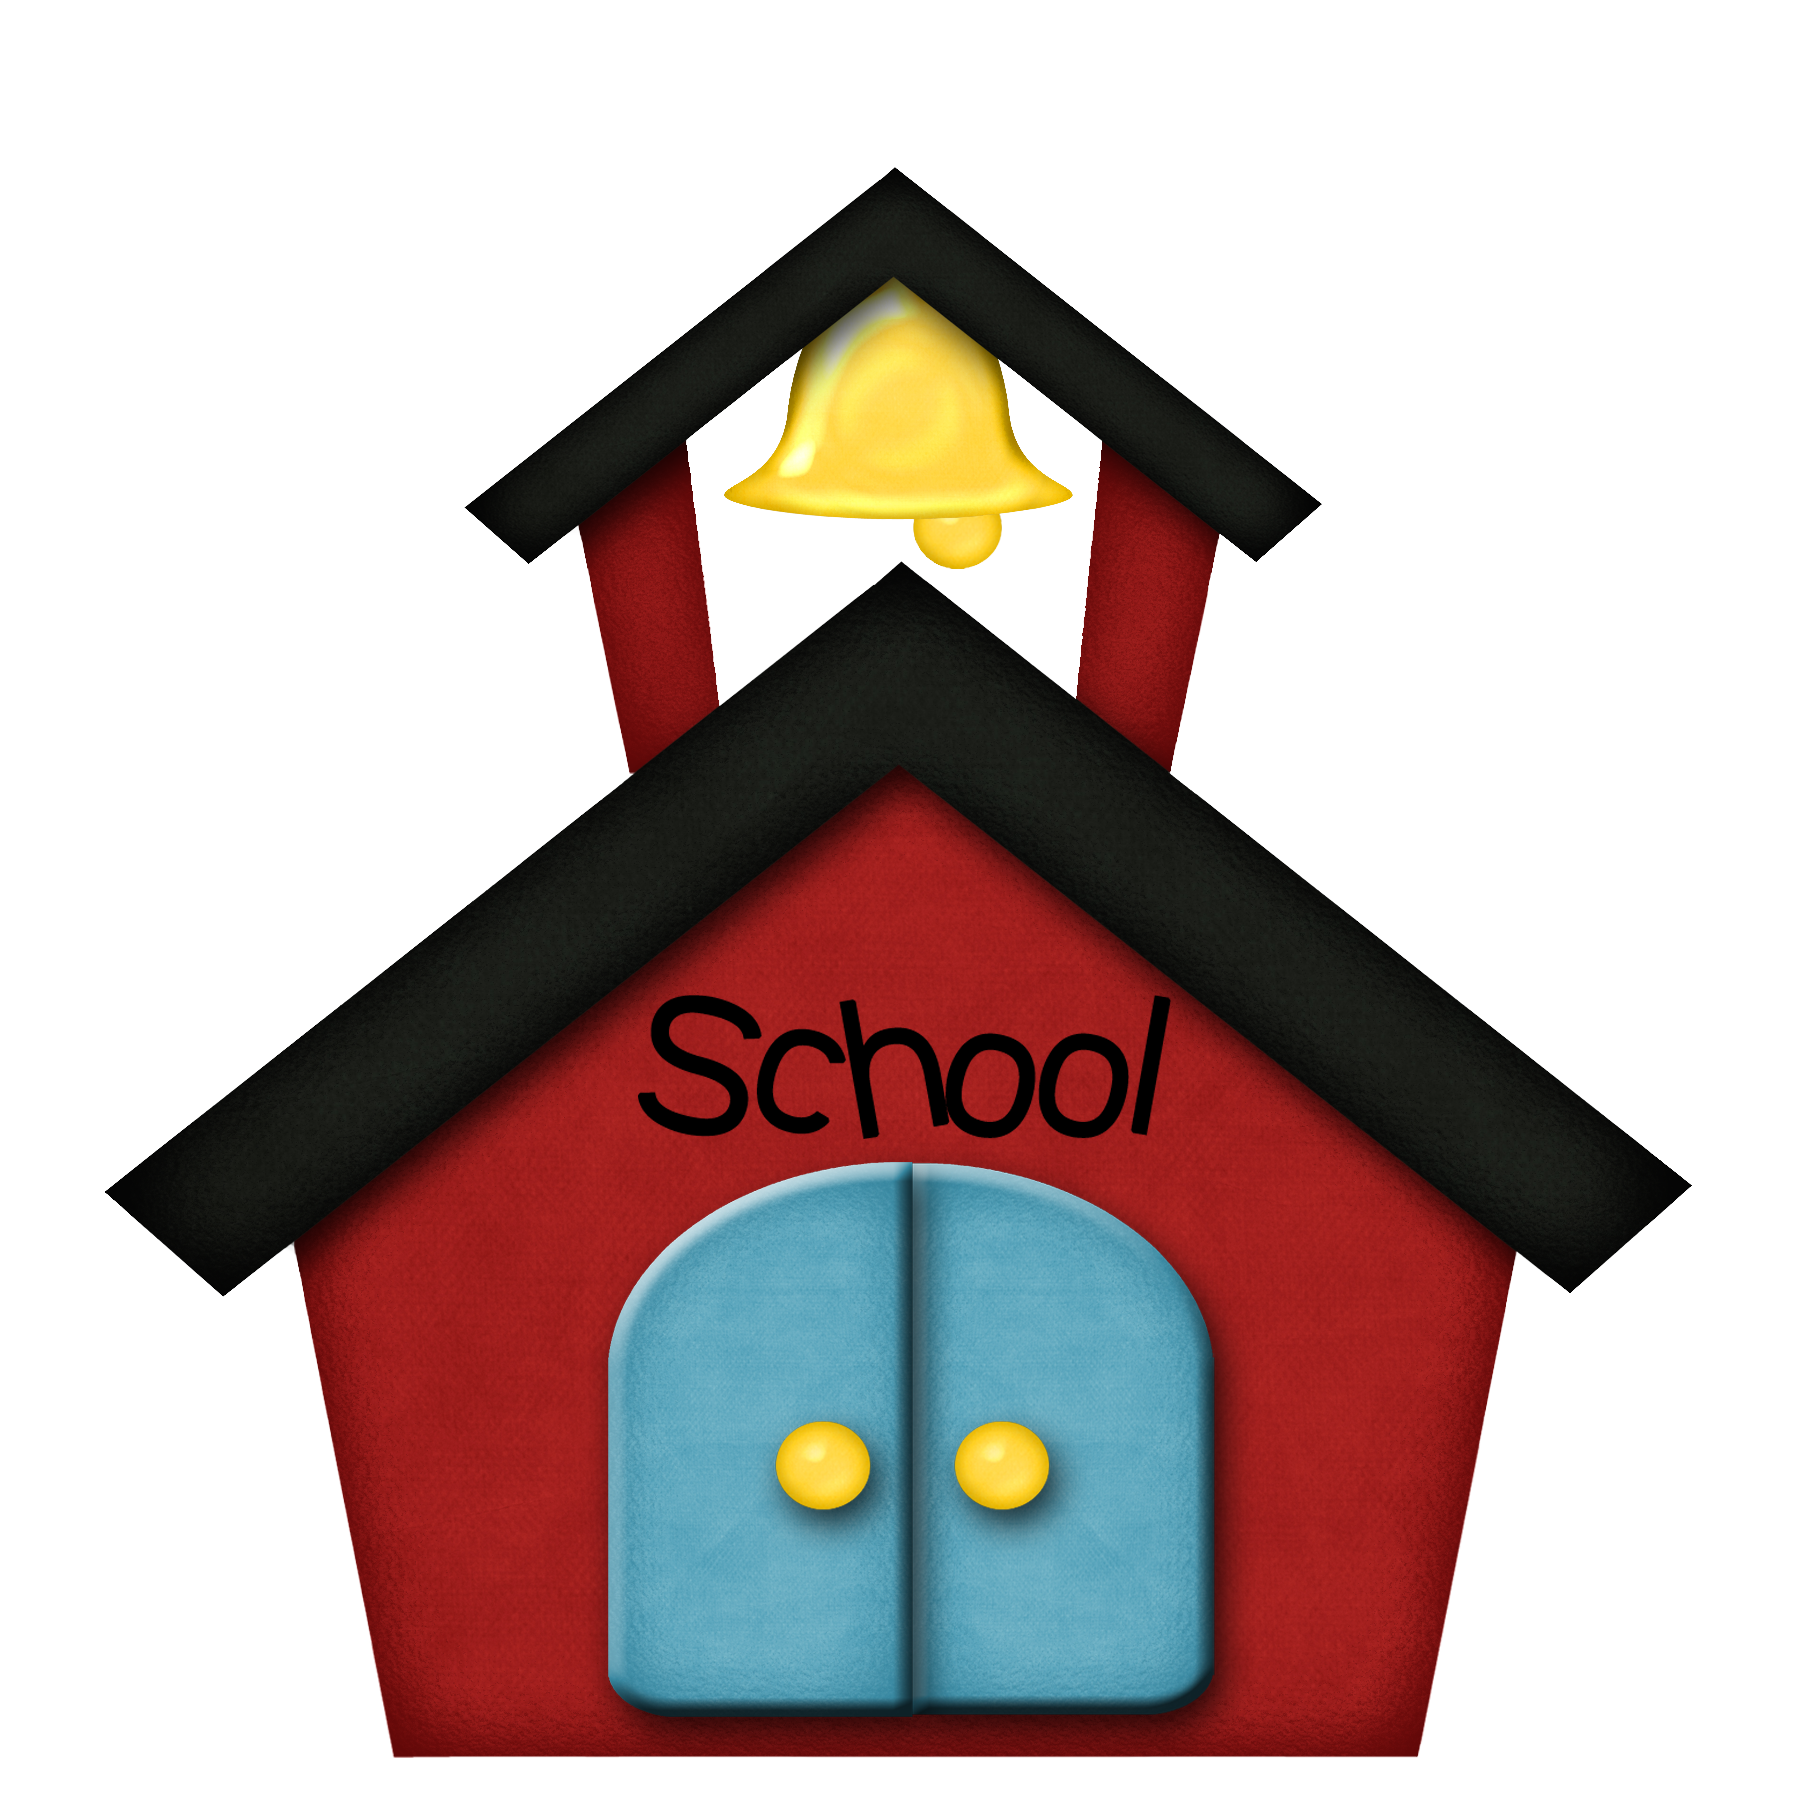 38 School House Photos Free Cliparts Tha-38 School House Photos Free Cliparts That You Can Download To You-1